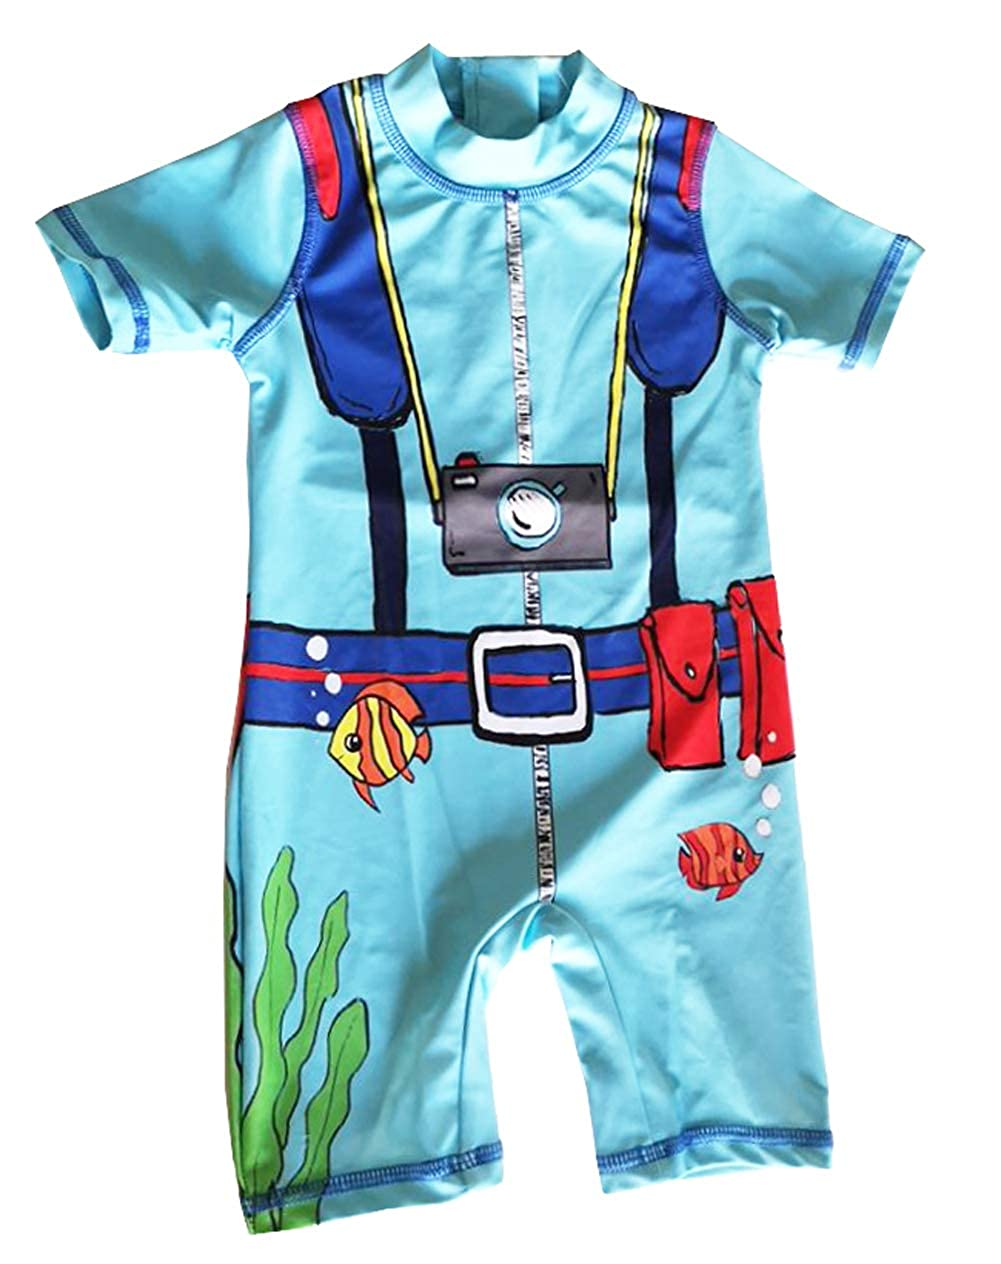 Infant Baby Boys Sunsuits Rash Guard Swimsuit Swimwear UPF 50+ Sun Protection